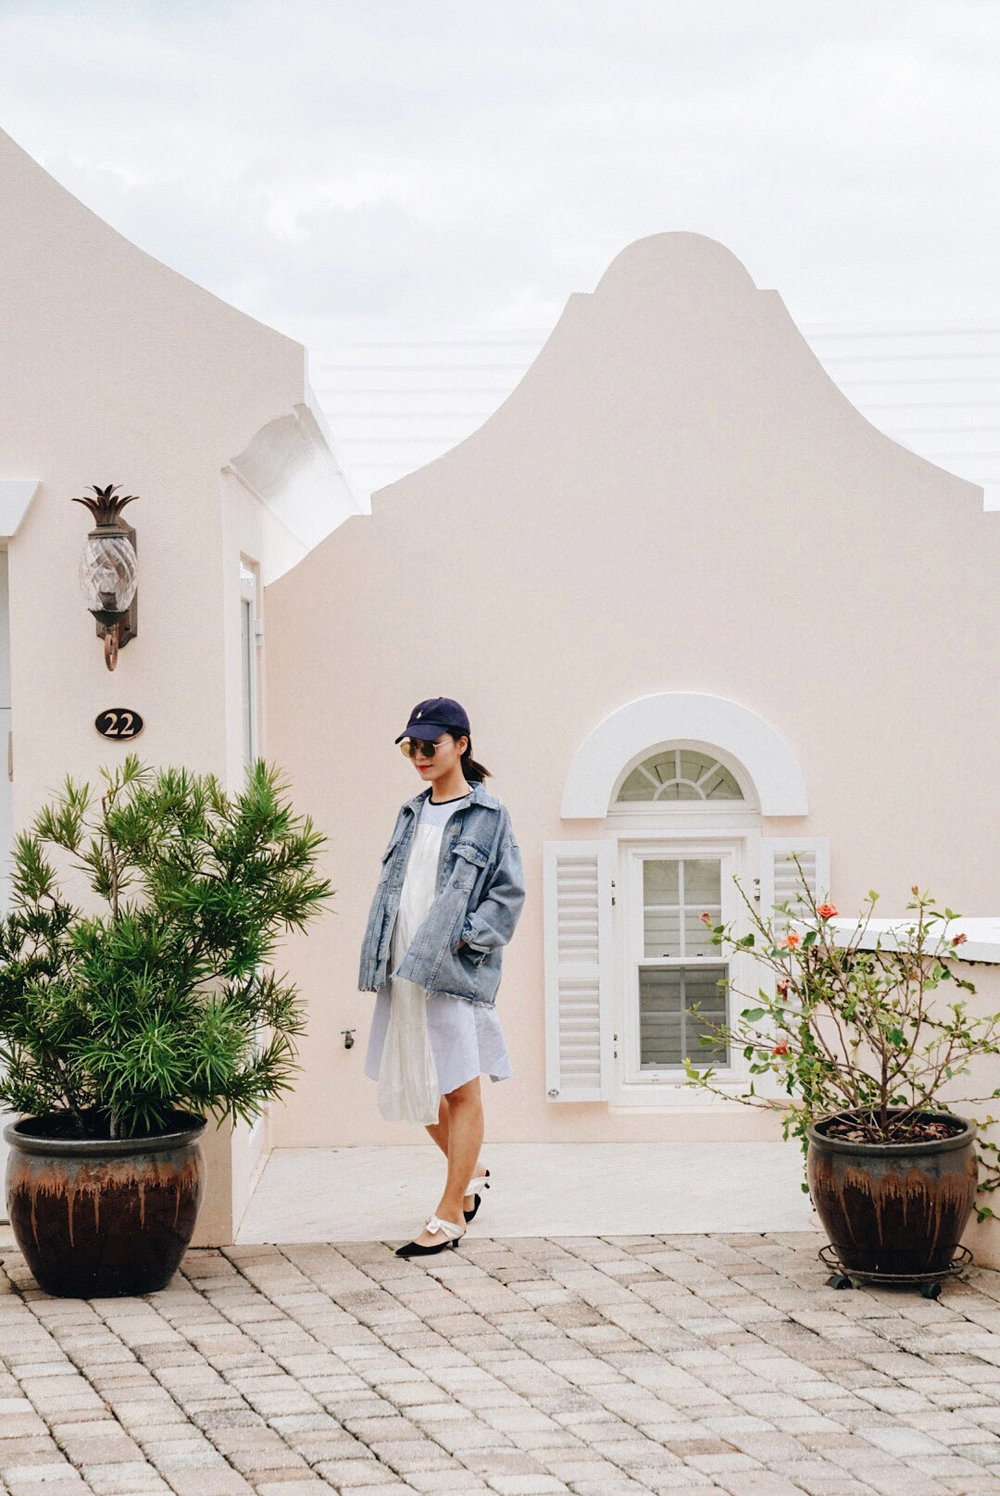 Wearing:  Polo Ralph Lauren Cap, NYBK Sunglasses, ALand Denim Jacket, JW Anderson Dress, The Row Mules